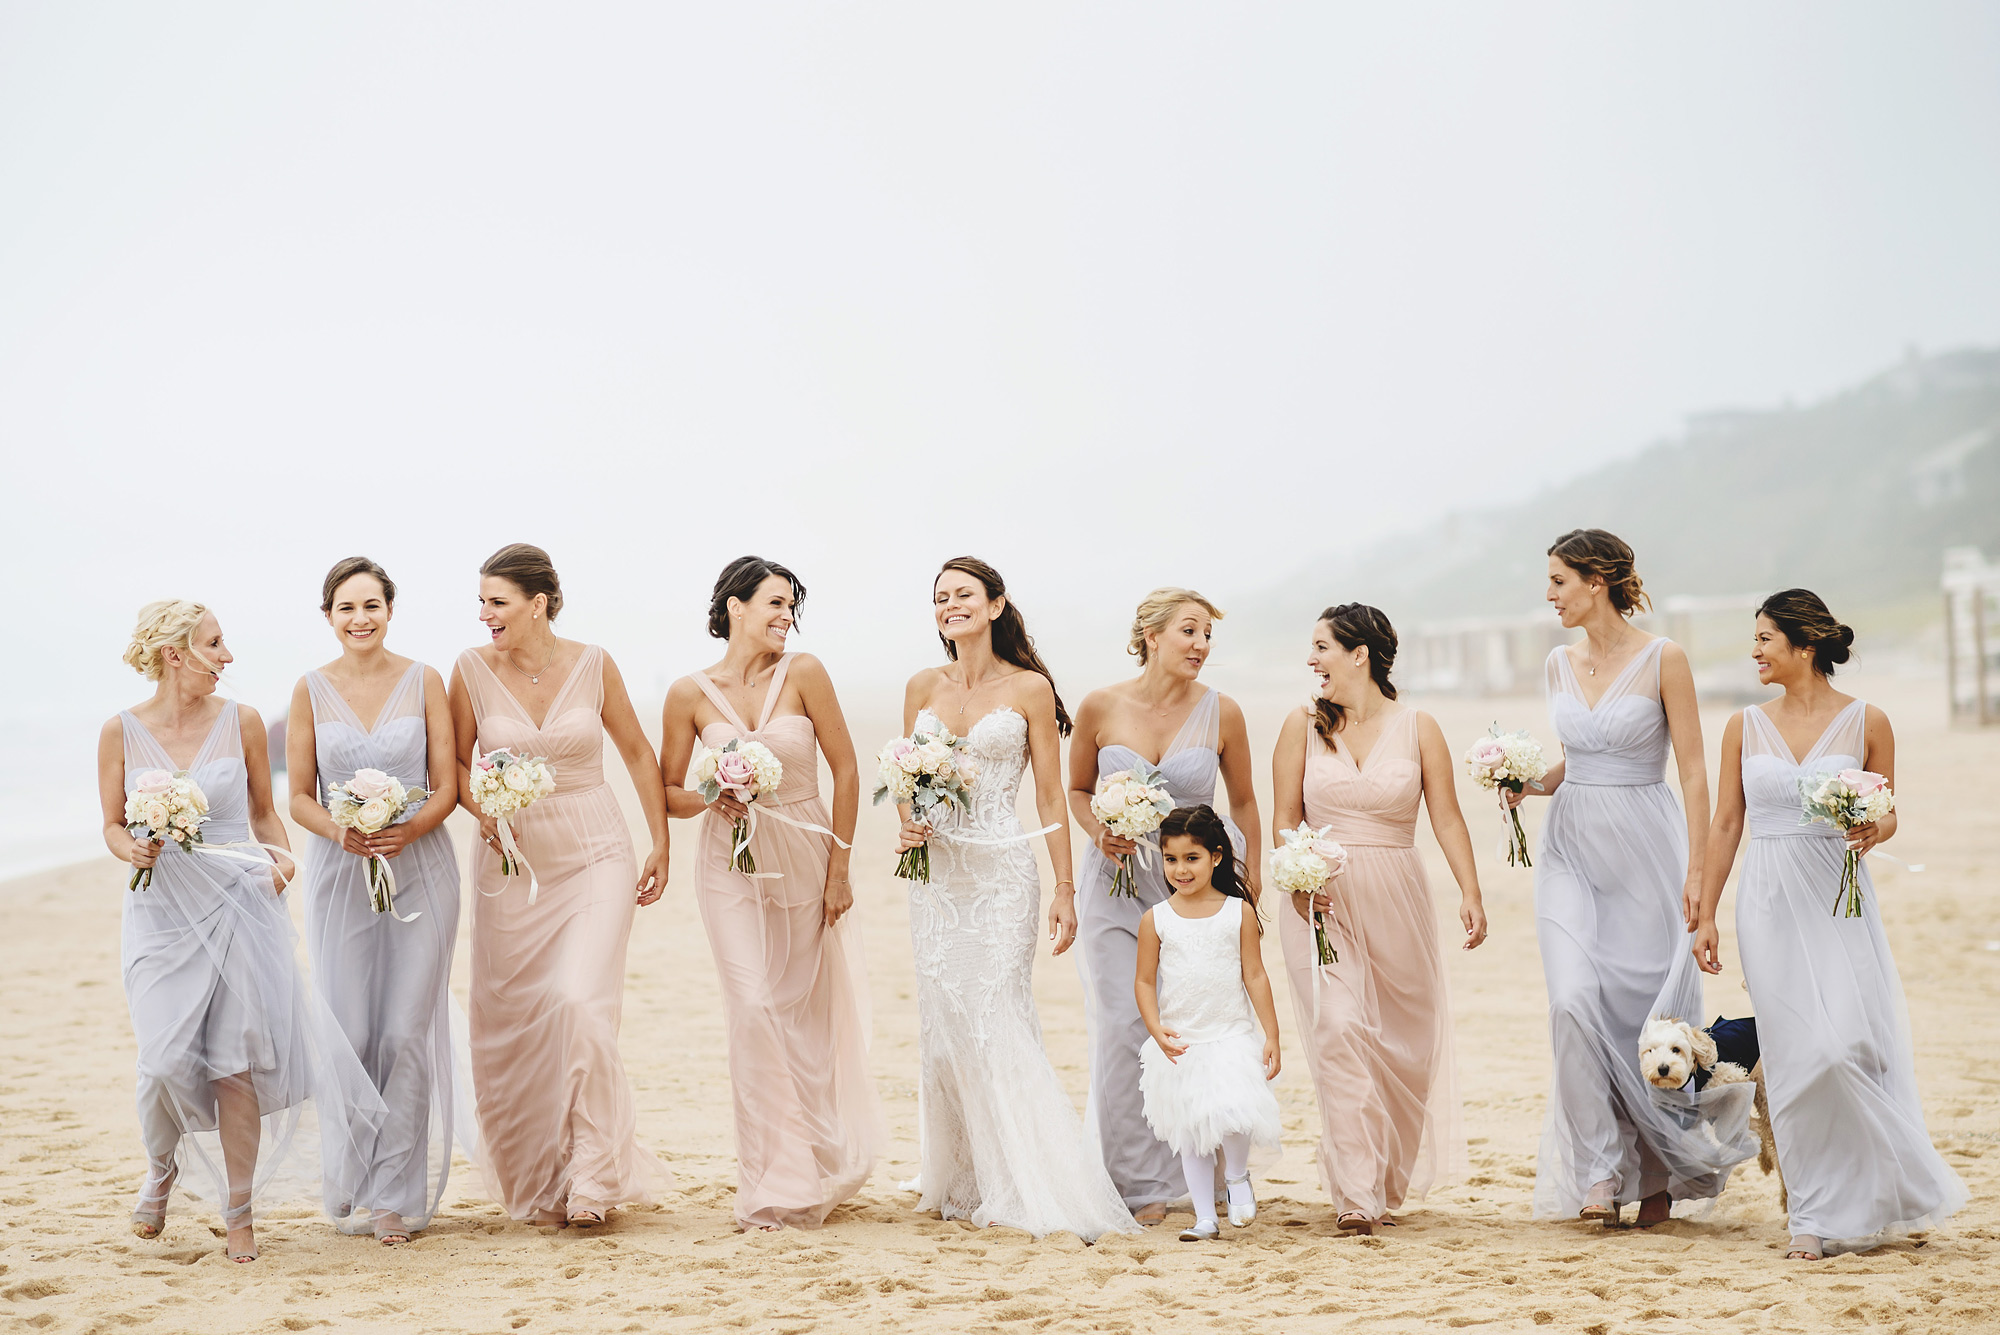 Bridesmaids wearing lavender and blush chiffon wedding gowns on beach with bride - photo by Ross Harvey - London